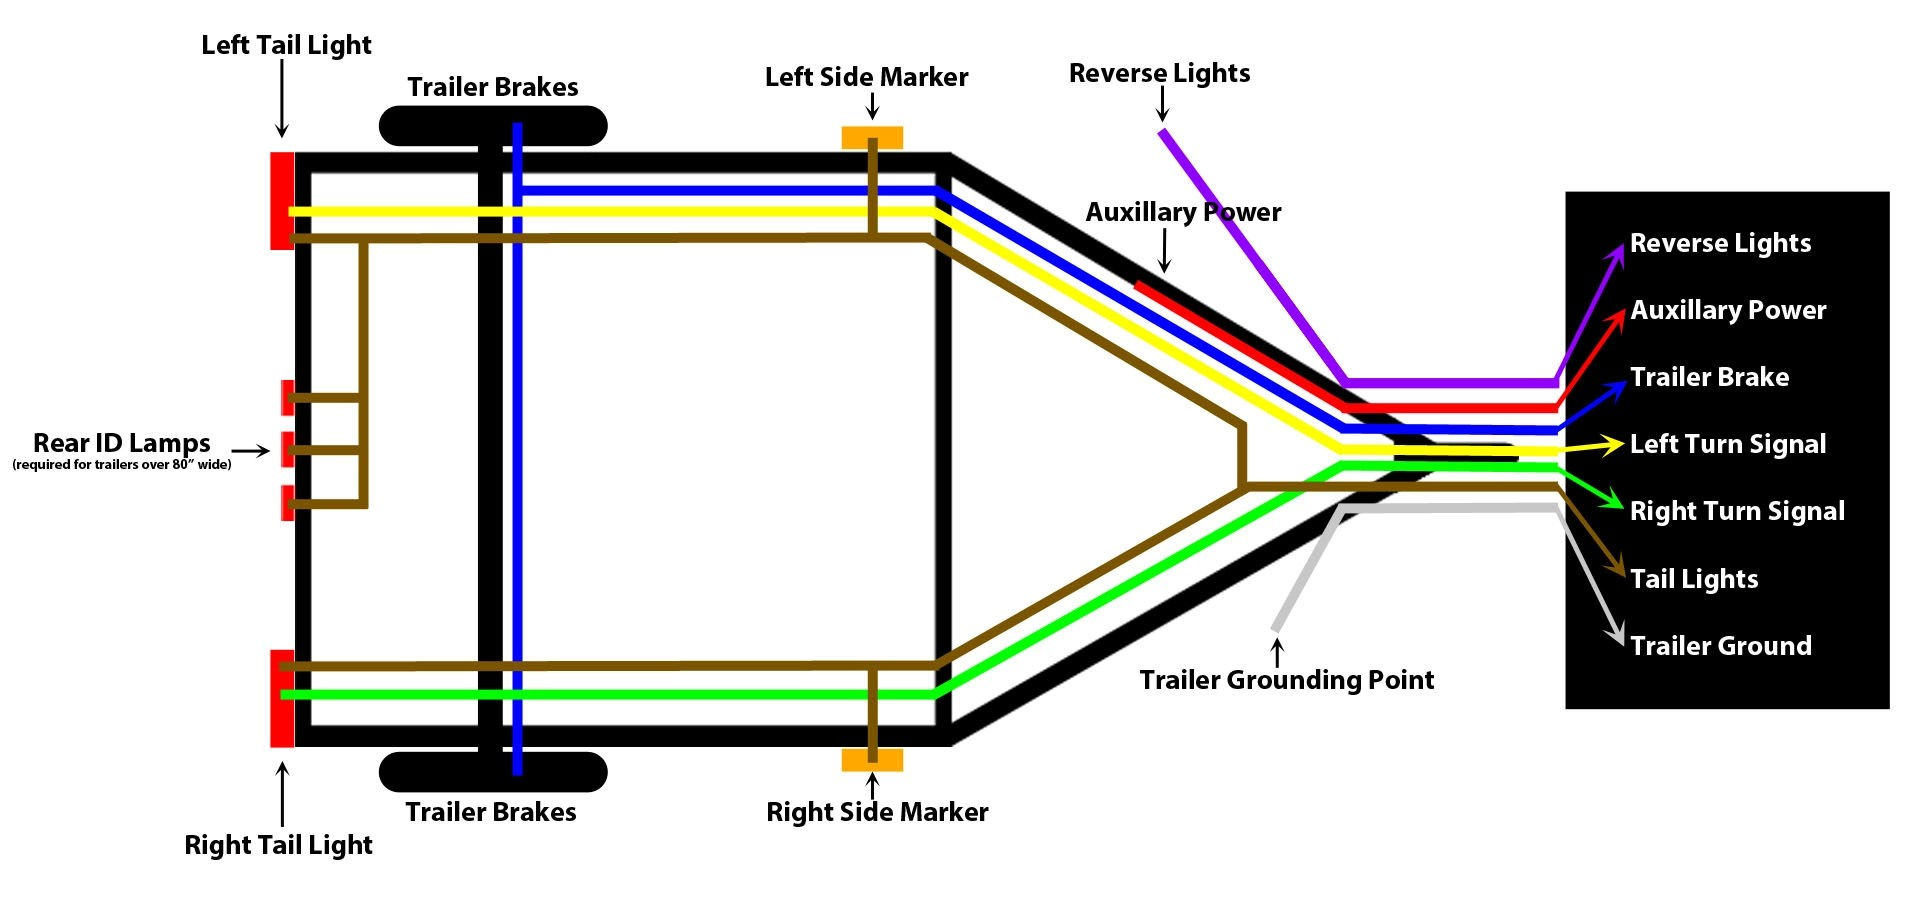 trailer wiring diagram?resize=665%2C313&ssl=1 mitsubishi triton wiring diagram tail lights wiring diagram mitsubishi triton wiring diagram tail lights at readyjetset.co